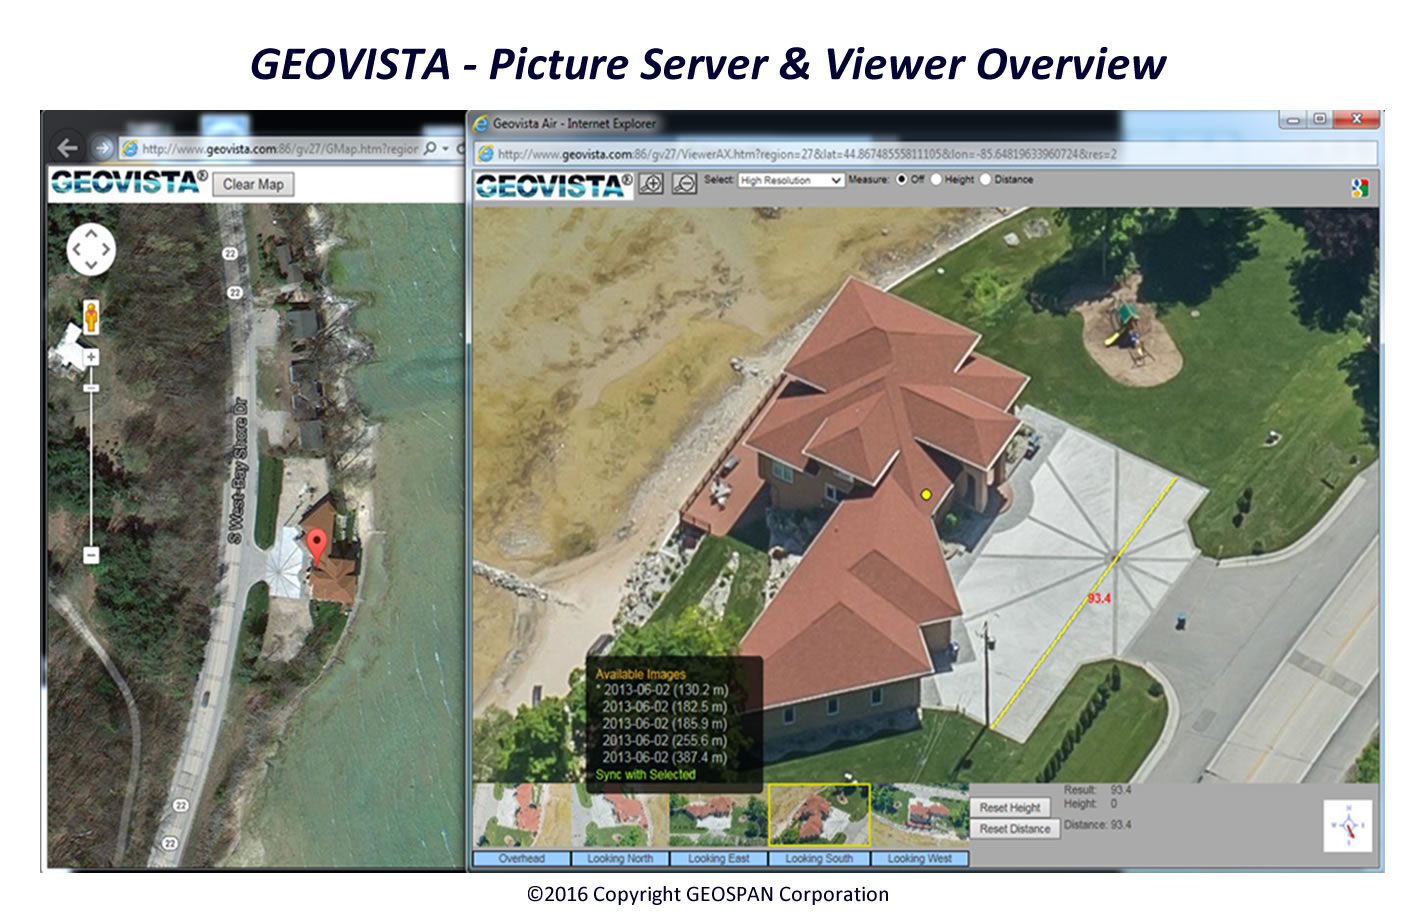 geovista-pictureserver-viewer